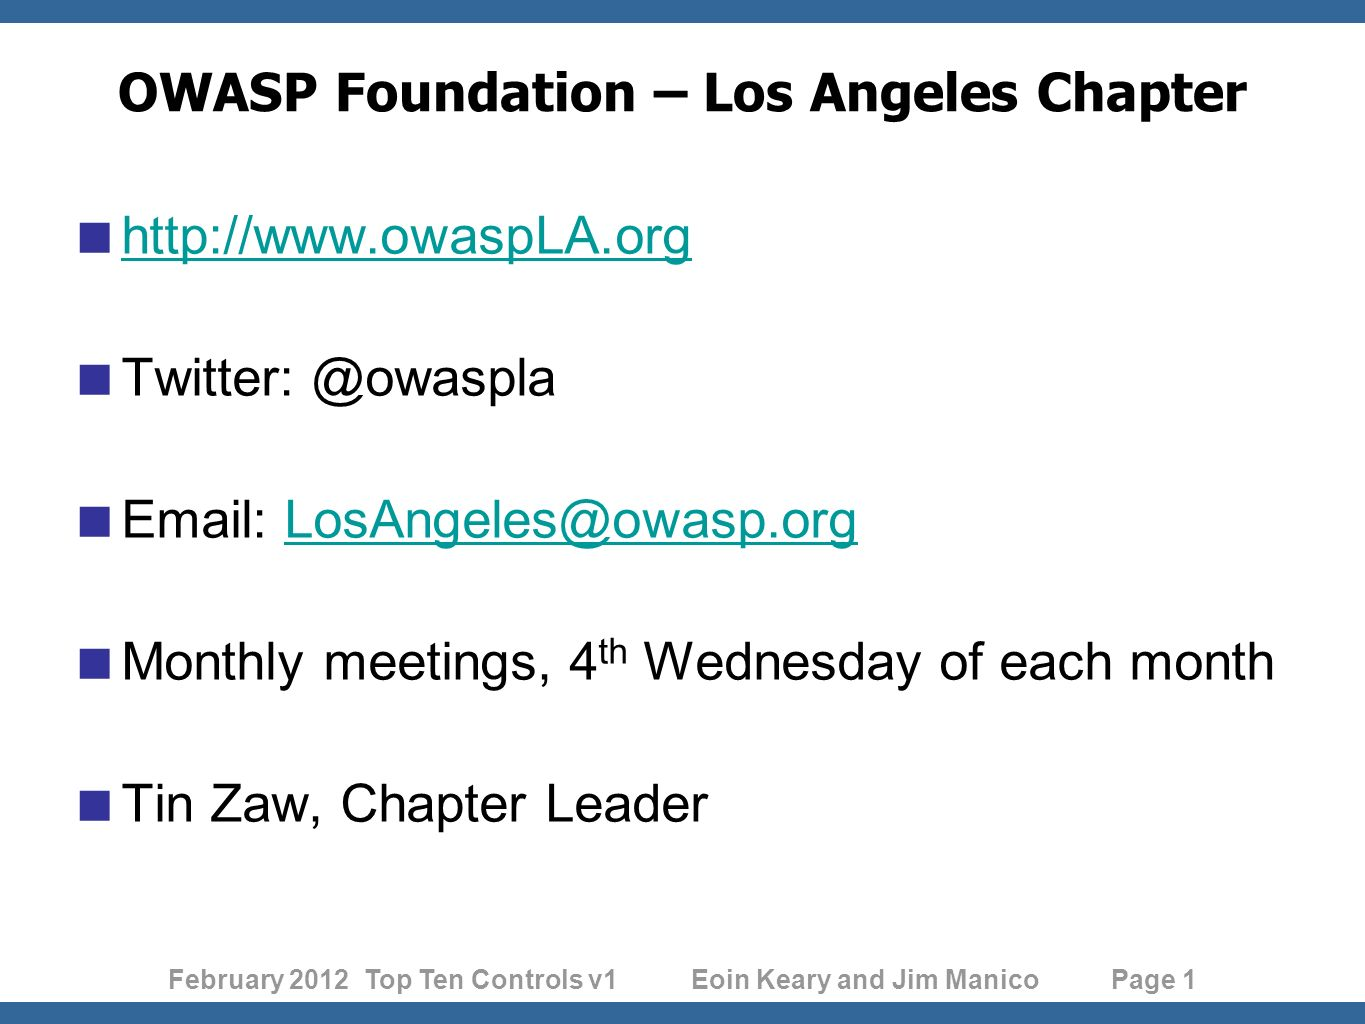 February 2012 Top Ten Controls v1 Eoin Keary and Jim Manico Page 1 OWASP Foundation – Los Angeles Chapter http://www.owaspLA.org Twitter: @owaspla Email: LosAngeles@owasp.orgLosAngeles@owasp.org Monthly meetings, 4 th Wednesday of each month Tin Zaw, Chapter Leader